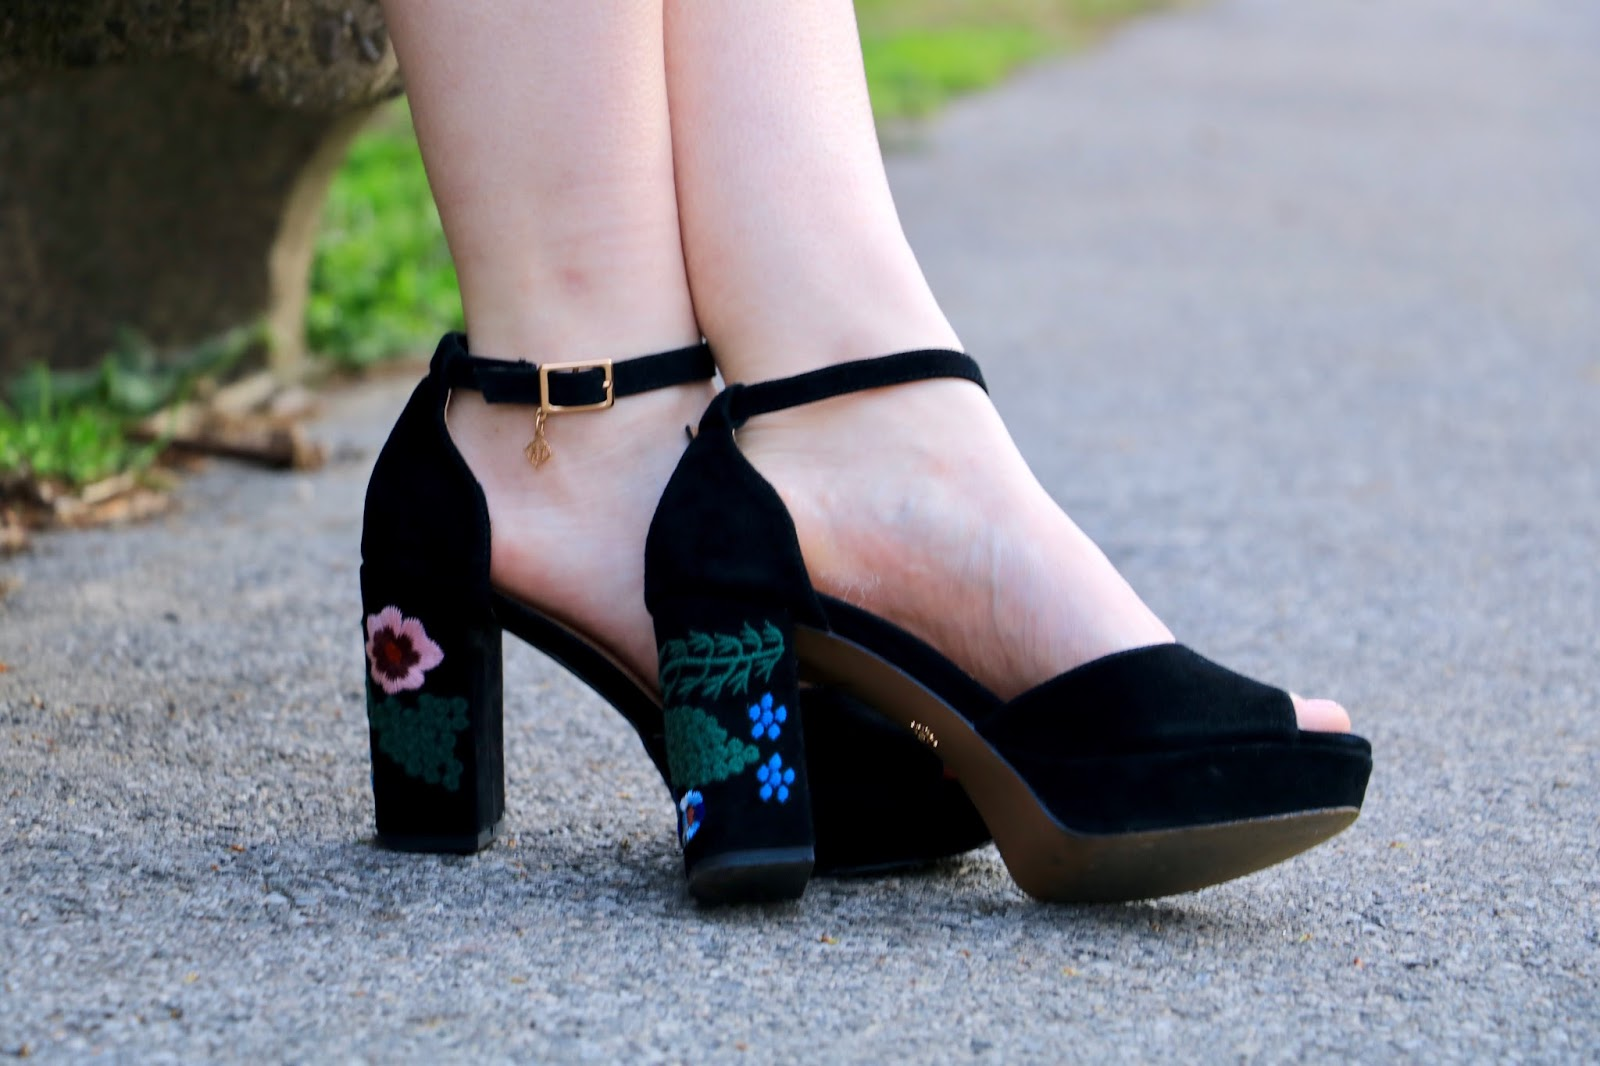 Nyc fashion blogger Kathleen Harper wearing black embellished platform heels